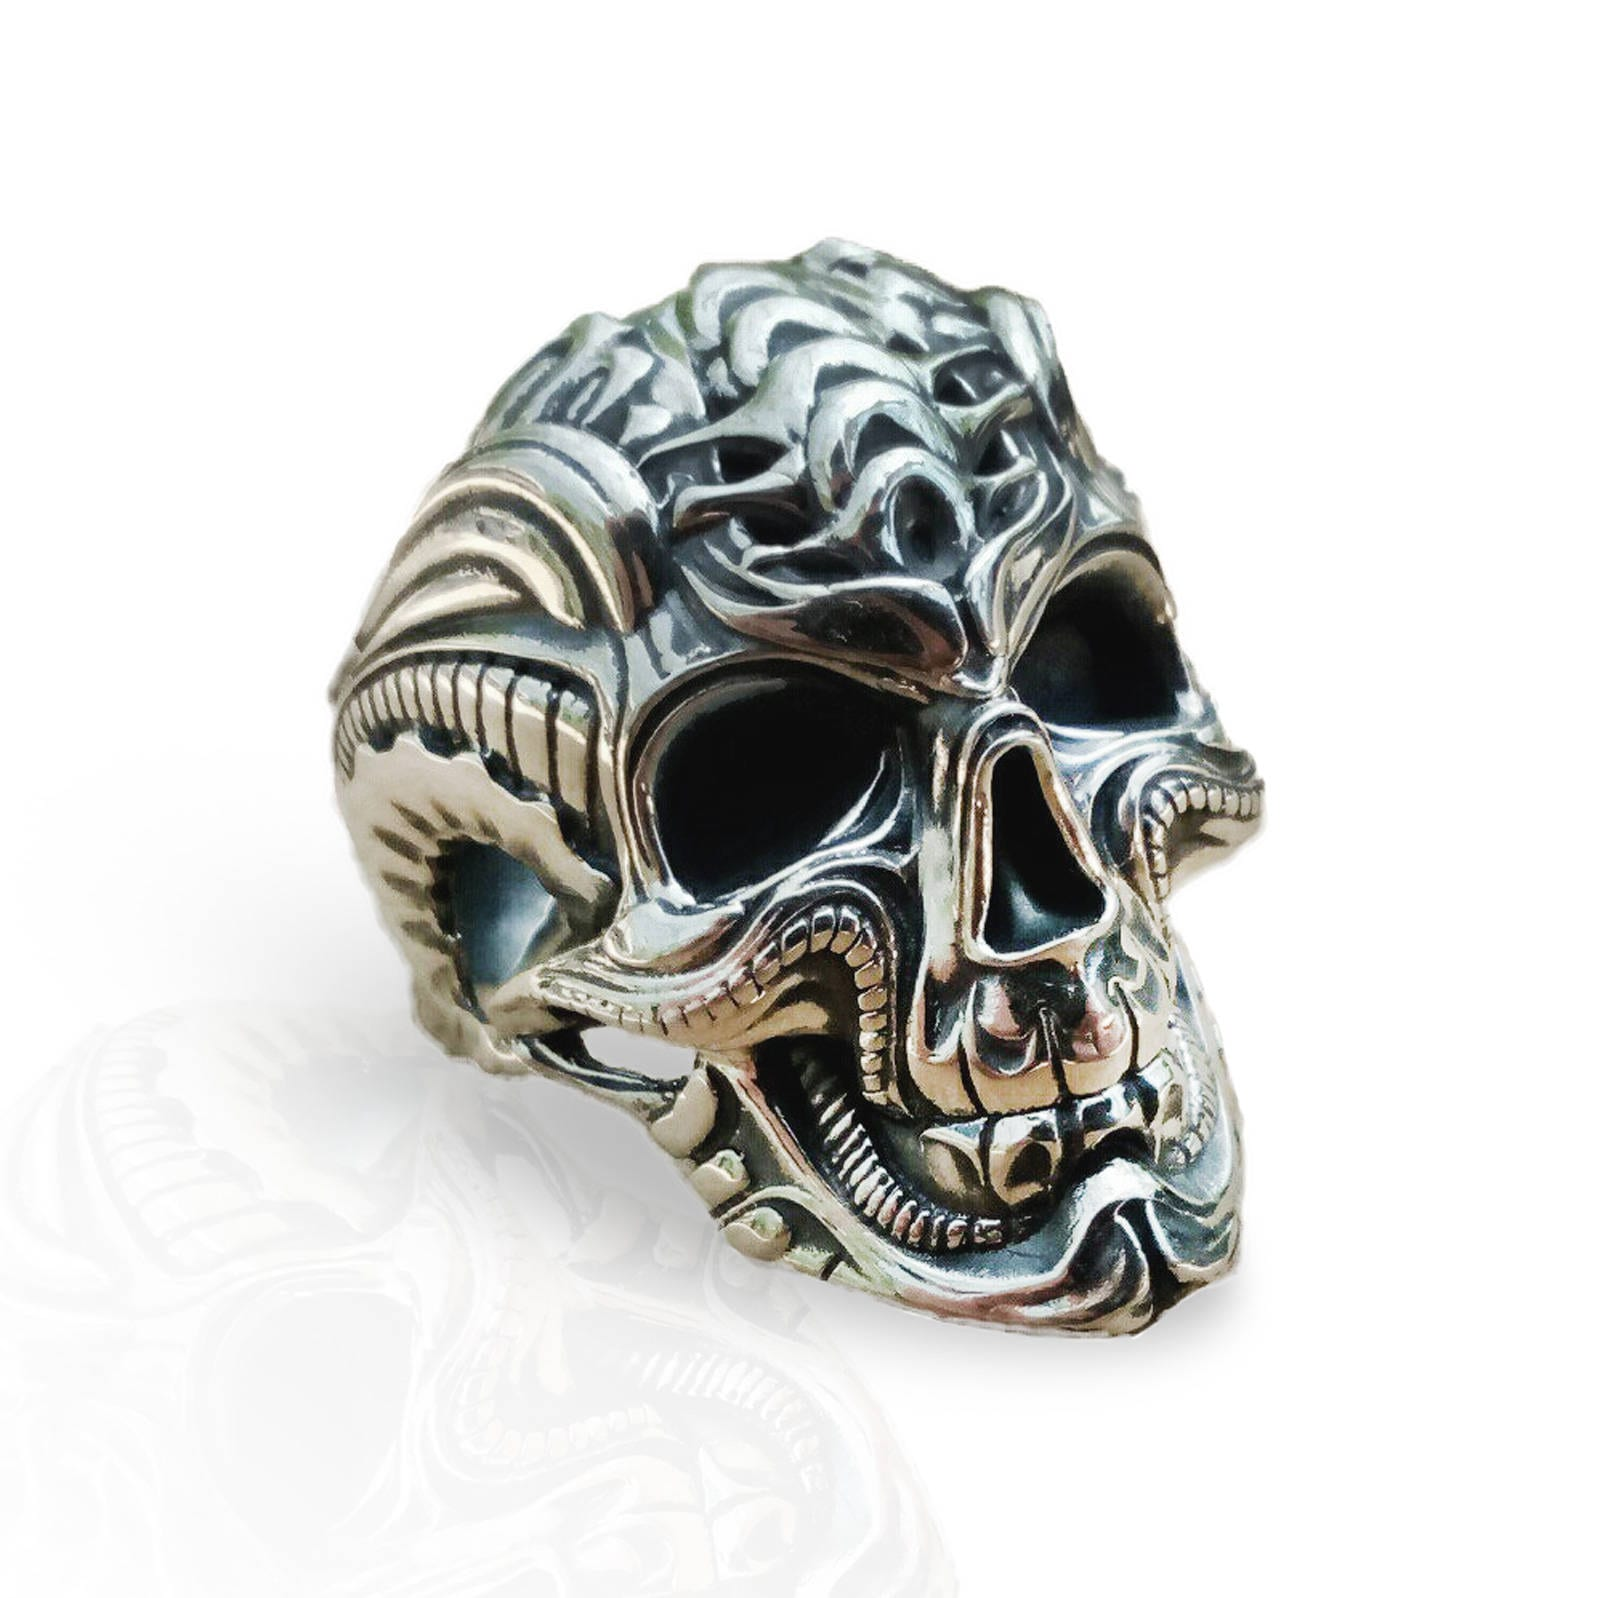 helmet jewelry silver pin unique skeleton visit black skull ring buy punk to plated rings stone